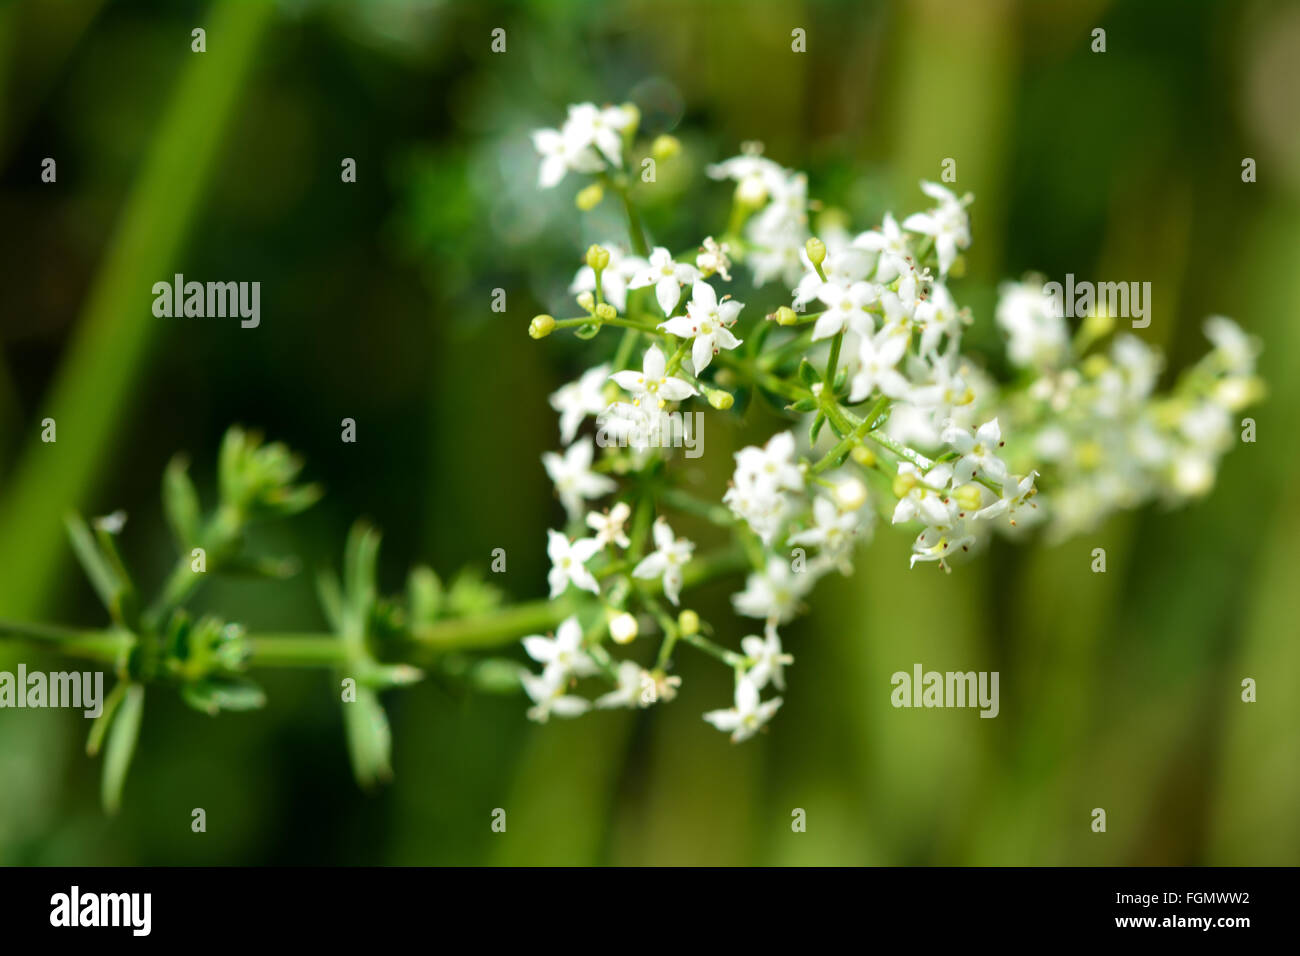 Hedge Bedstraw Galium Mollugo In Flower Detail Of Flowers Of This